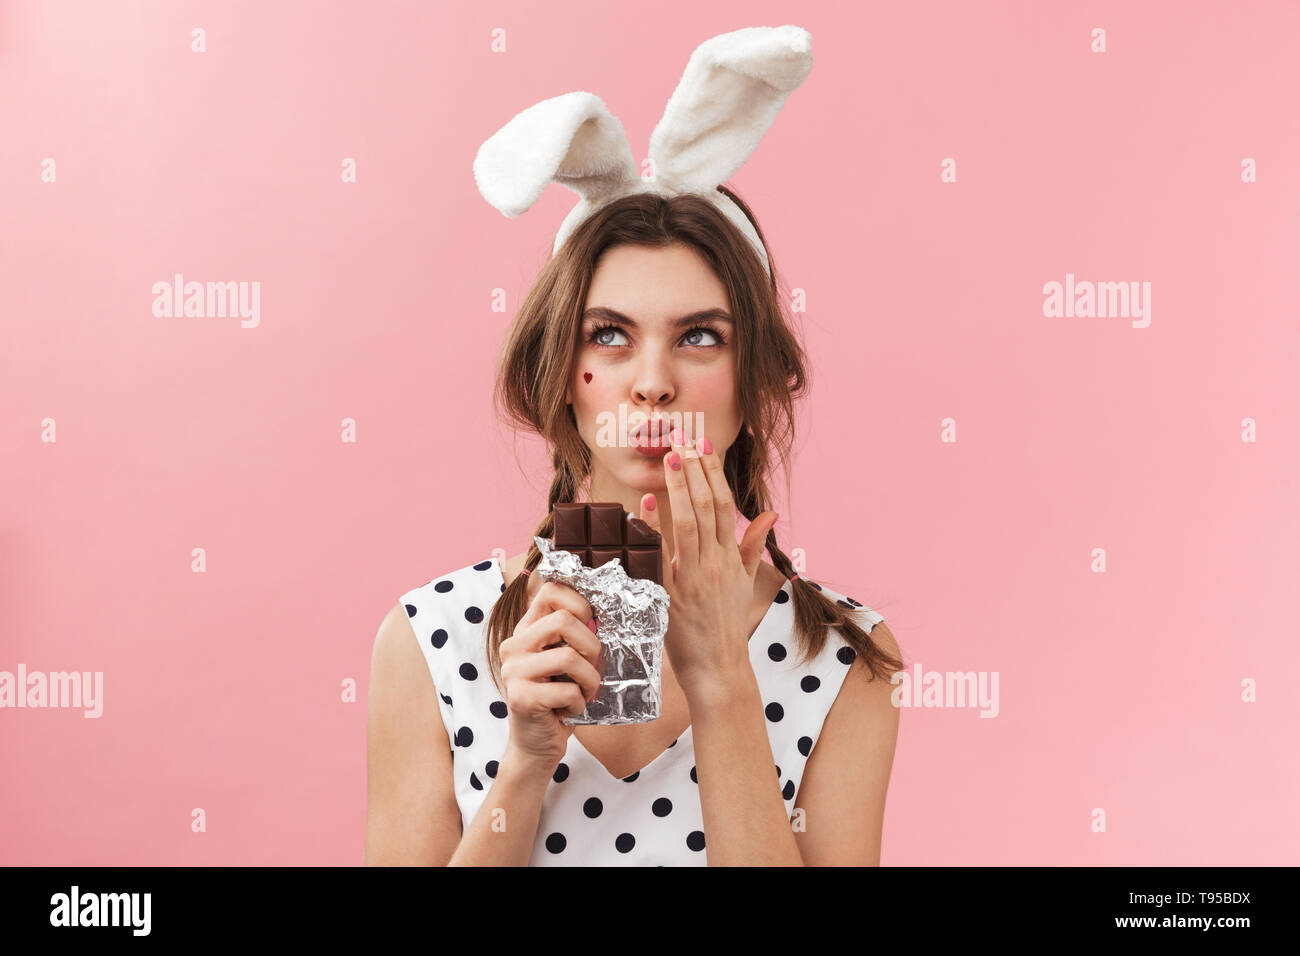 c3a6a94bbda2 Portrait of a pretty lovely girl wearing bunny ears standing isolated over  pink background, eating